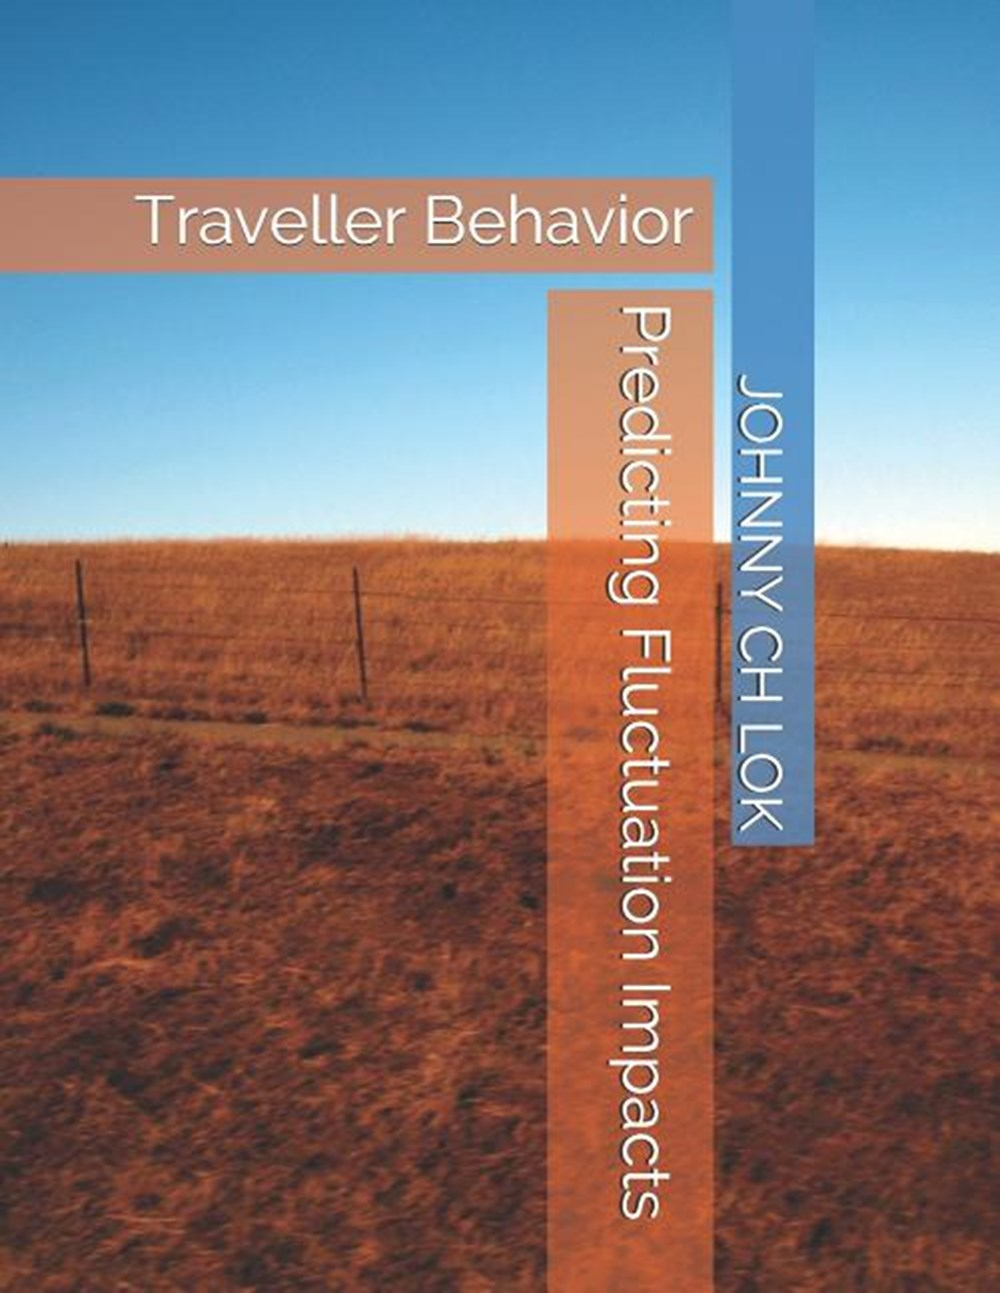 Predicting Fluctuation Impacts Traveller Behavior